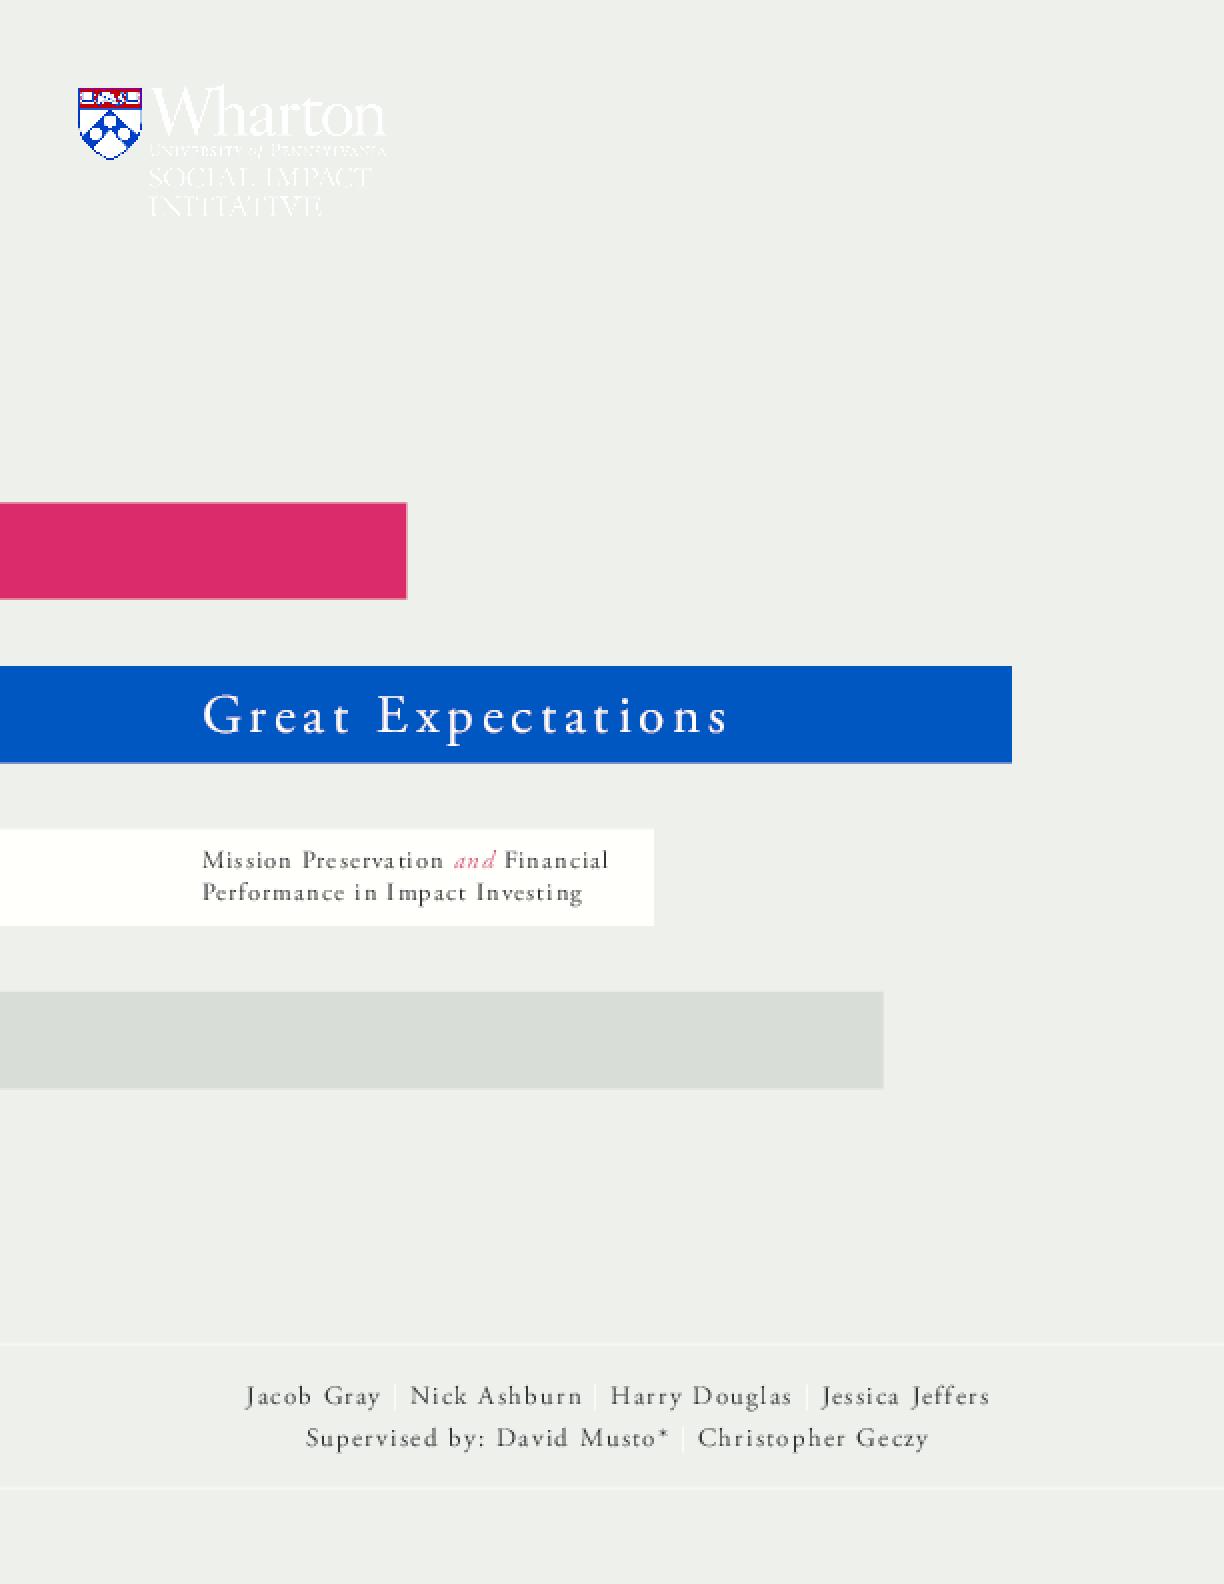 Great Expectations: Mission Preservation and Financial Performance in Impact Investing